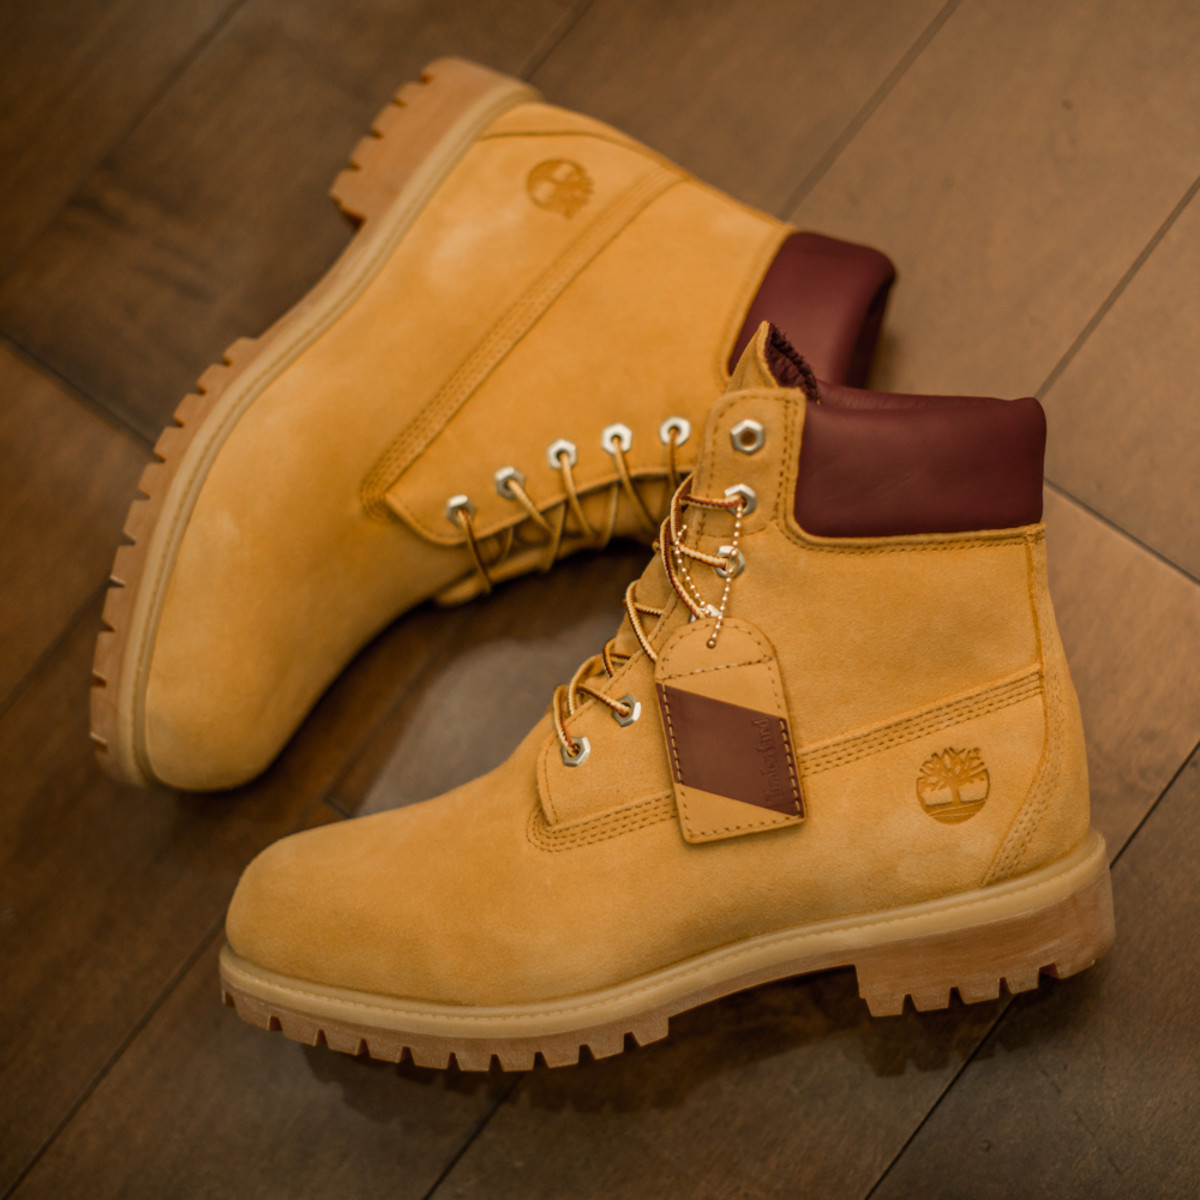 timberland-6-inch-boot-wheat-suede-dtlr-exclusive-03.jpg